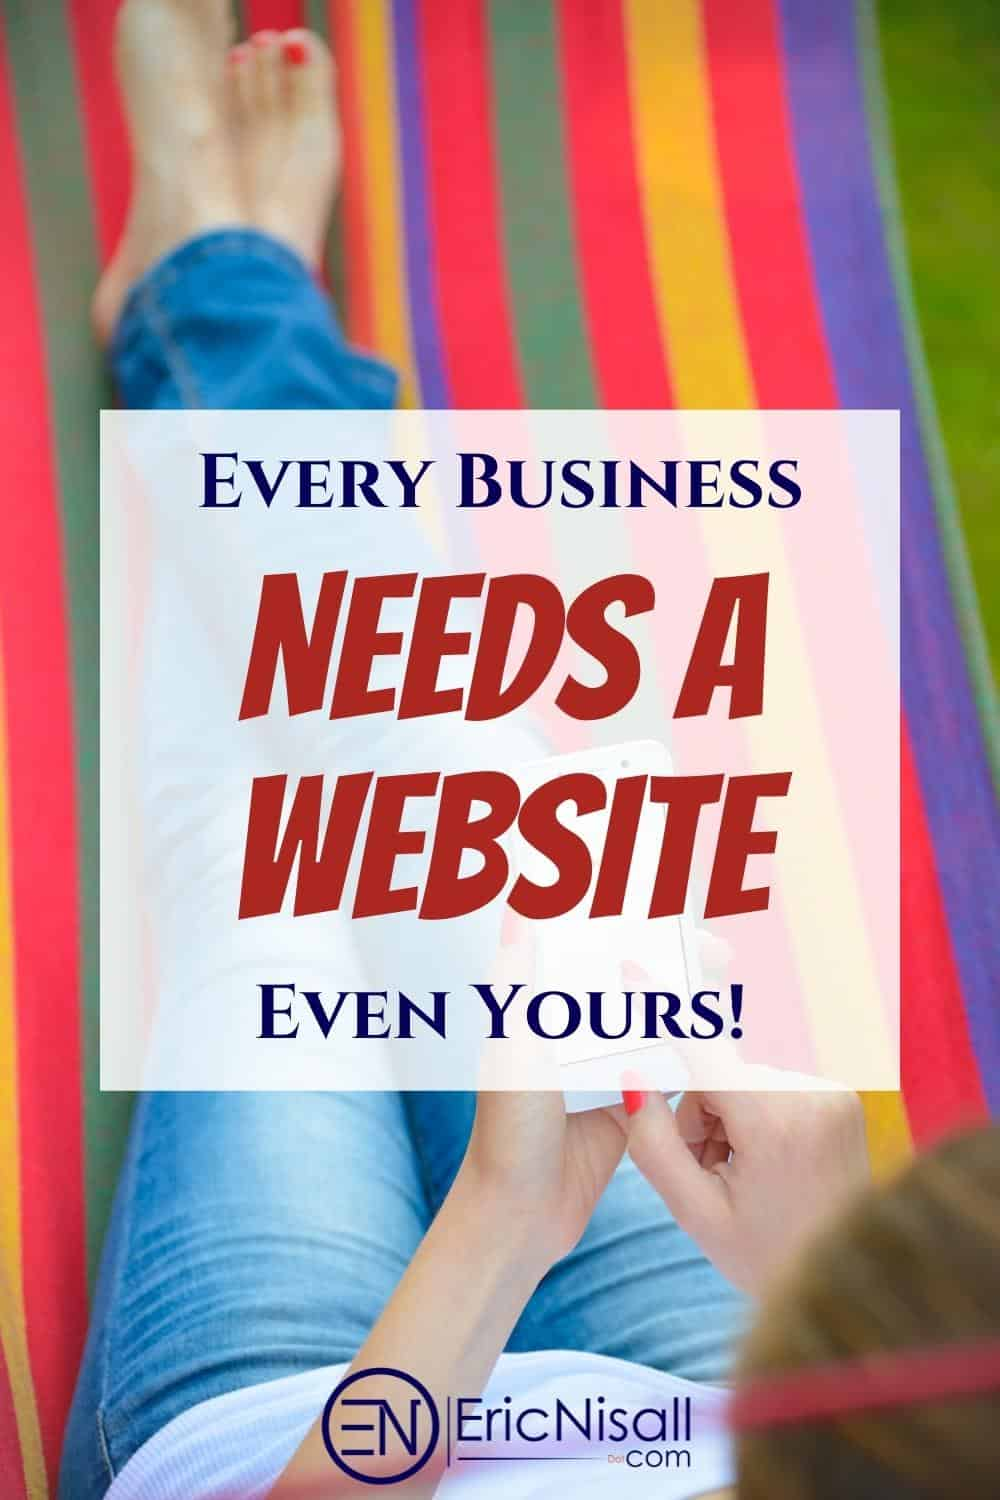 Every business needs an online presence, regardless of the type of business. You need a website and possibly even a blog to show your expertise and compete in an online world. #freelancing #smallbusiness #marketing #blogging #sales #webdesign #websitedesign via @ericnisall